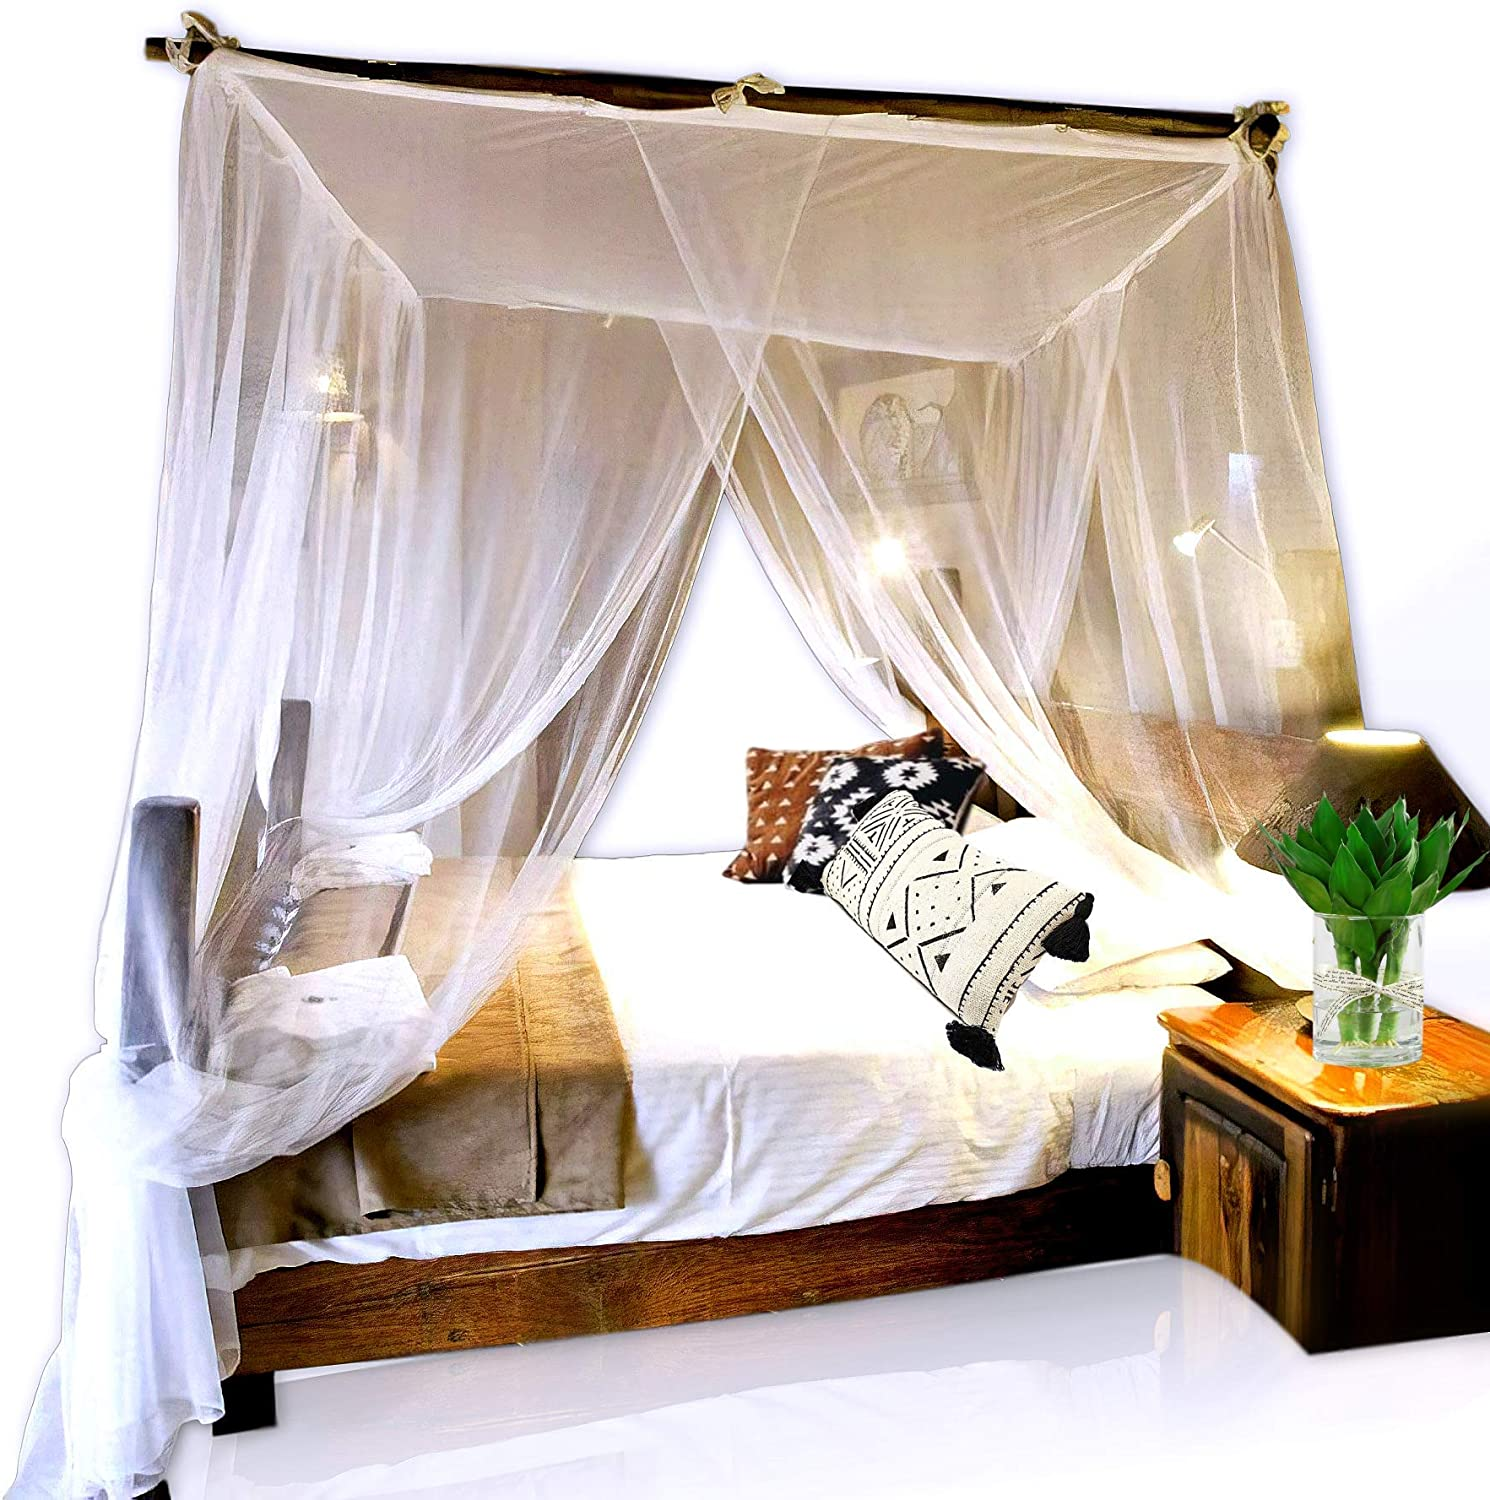 - Amazon.com: Basik Nature Jumbo Mosquito Net Canopy For Queen-King